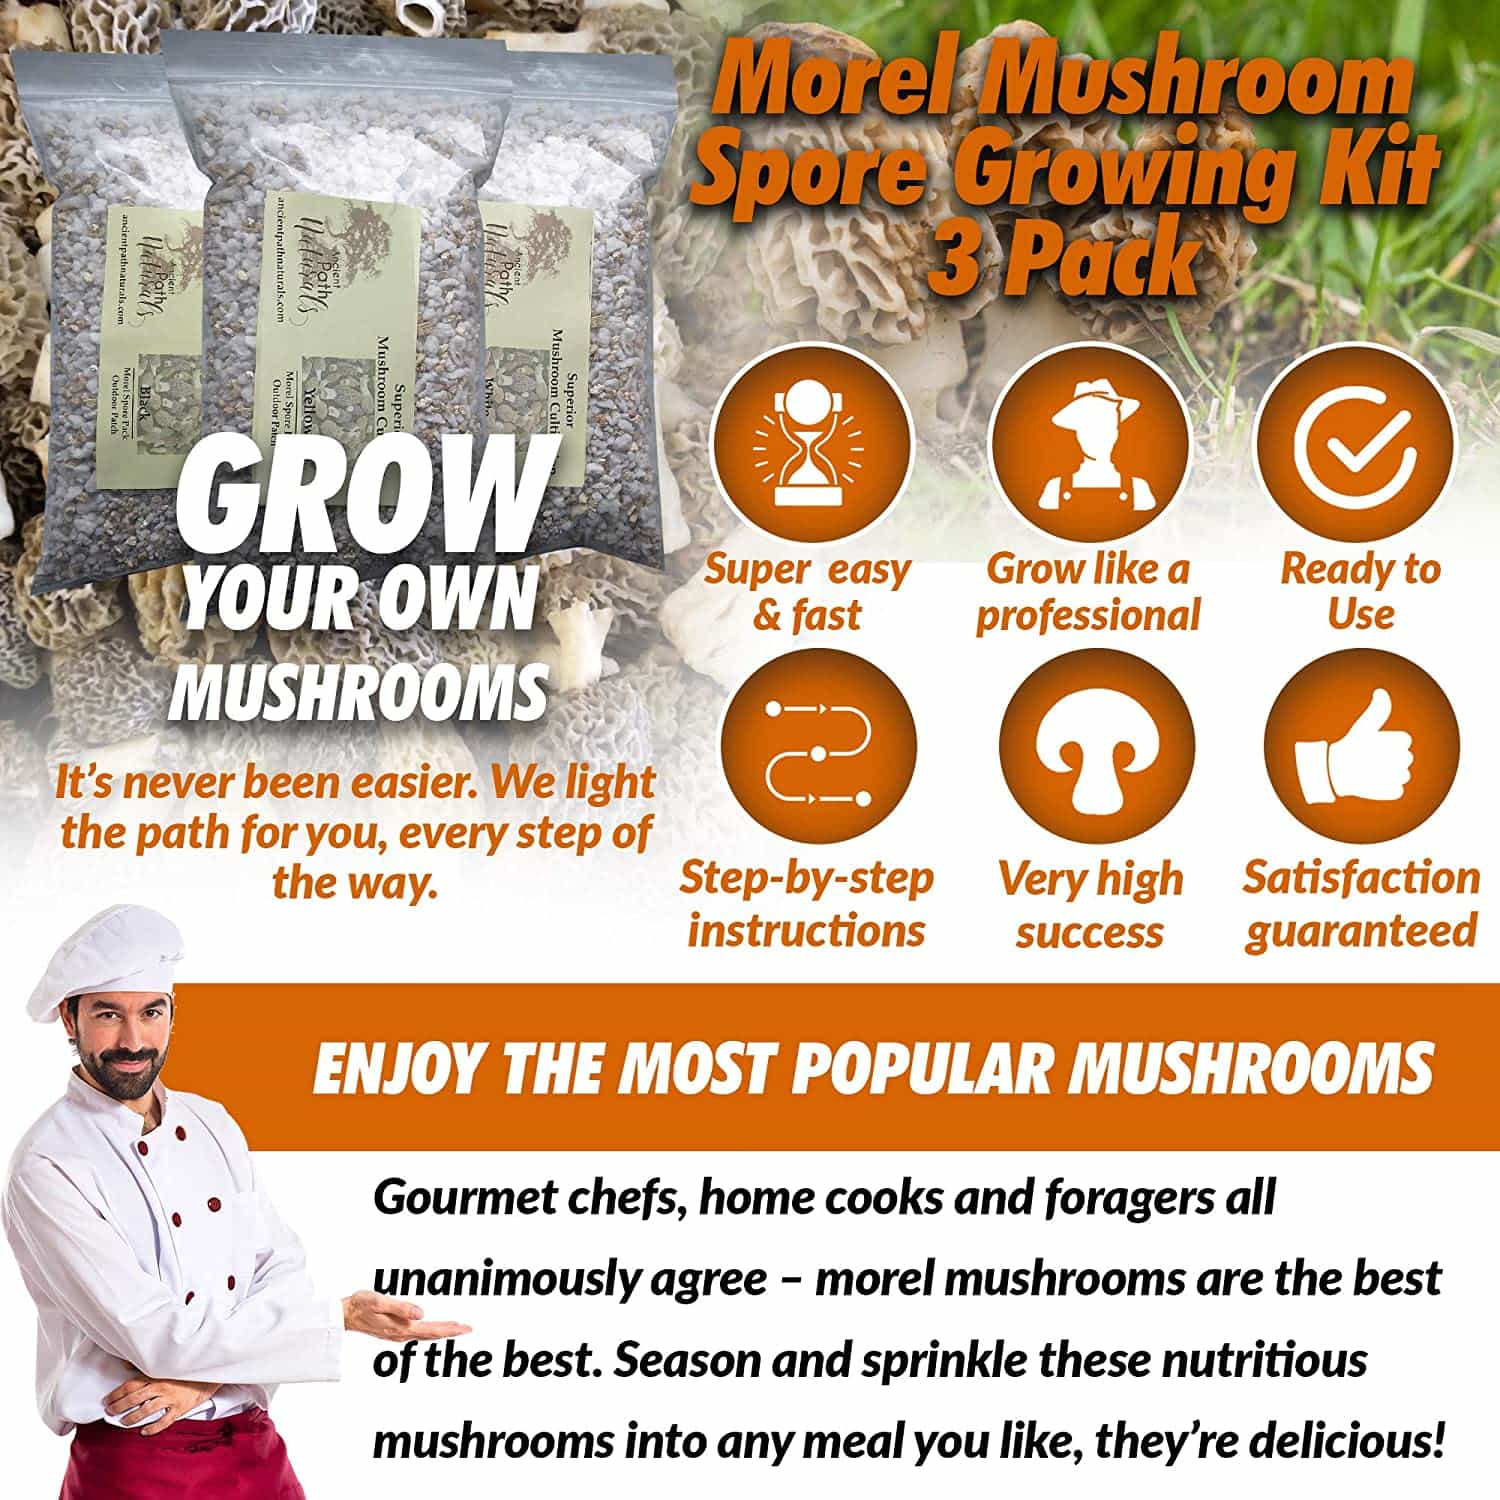 Morel Mushroom Spore Growing Kit